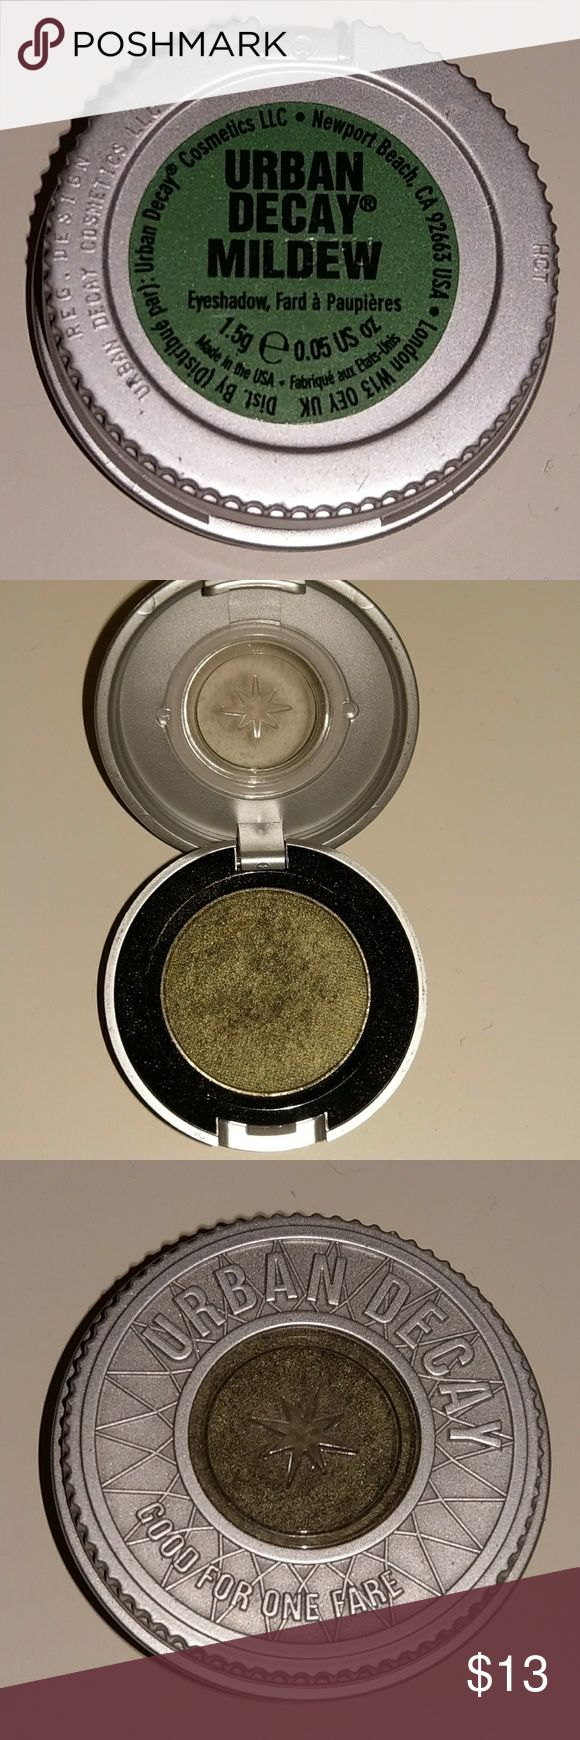 Urban Decay Eyeshadow - Mildew Lightly used, still a lot of product left. Only ended up using it a few times as I don't reach for single eyeshadows much. Color is a mossy green color with a touch of sheen and sparkle  Very pretty! Product is full-sized single eyeshadow pan. Urban Decay Makeup Eyeshadow